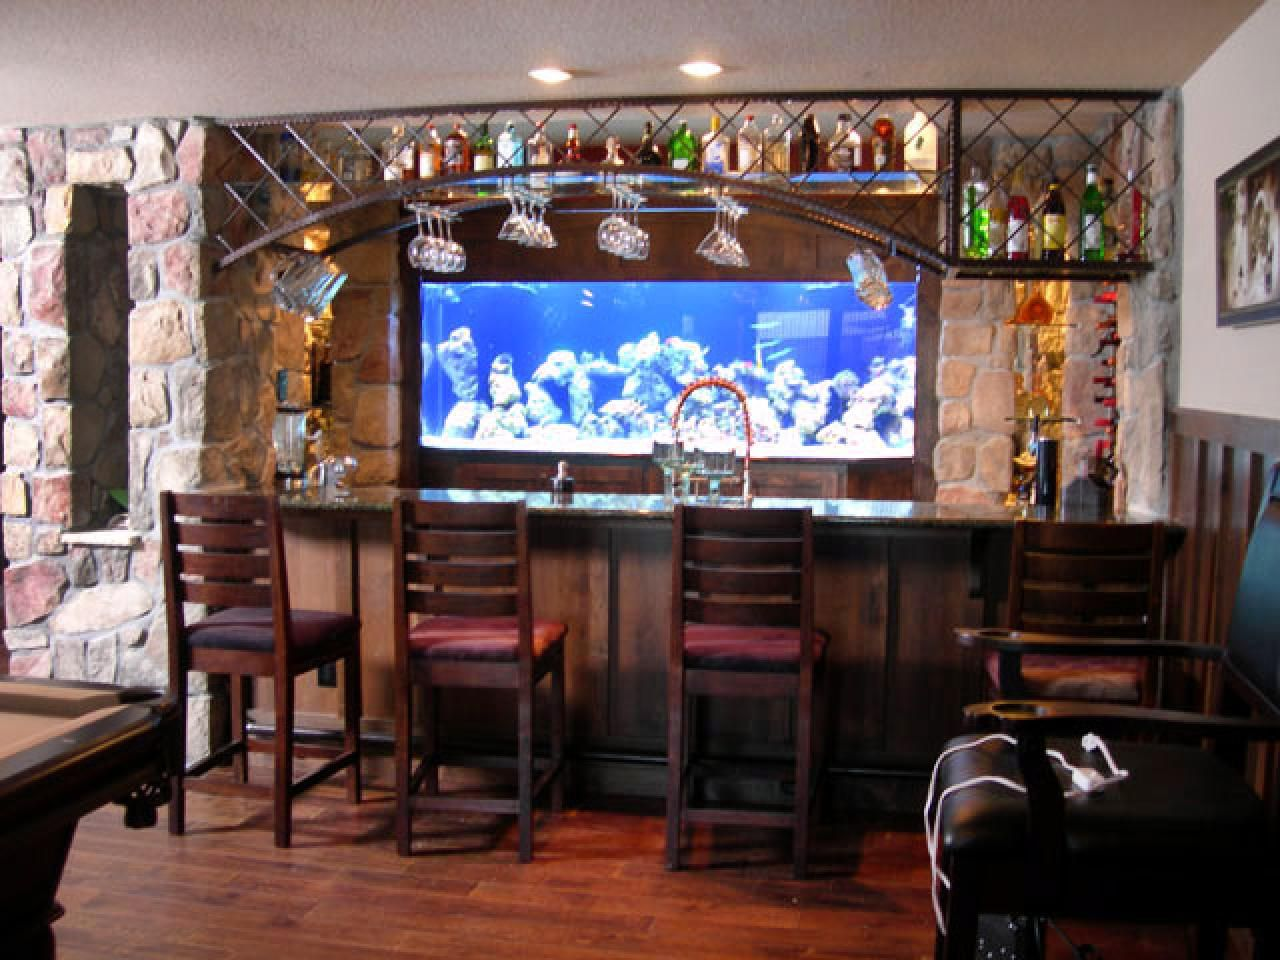 Home bar ideas 89 design options hgtv kitchen design for Bar designs at home